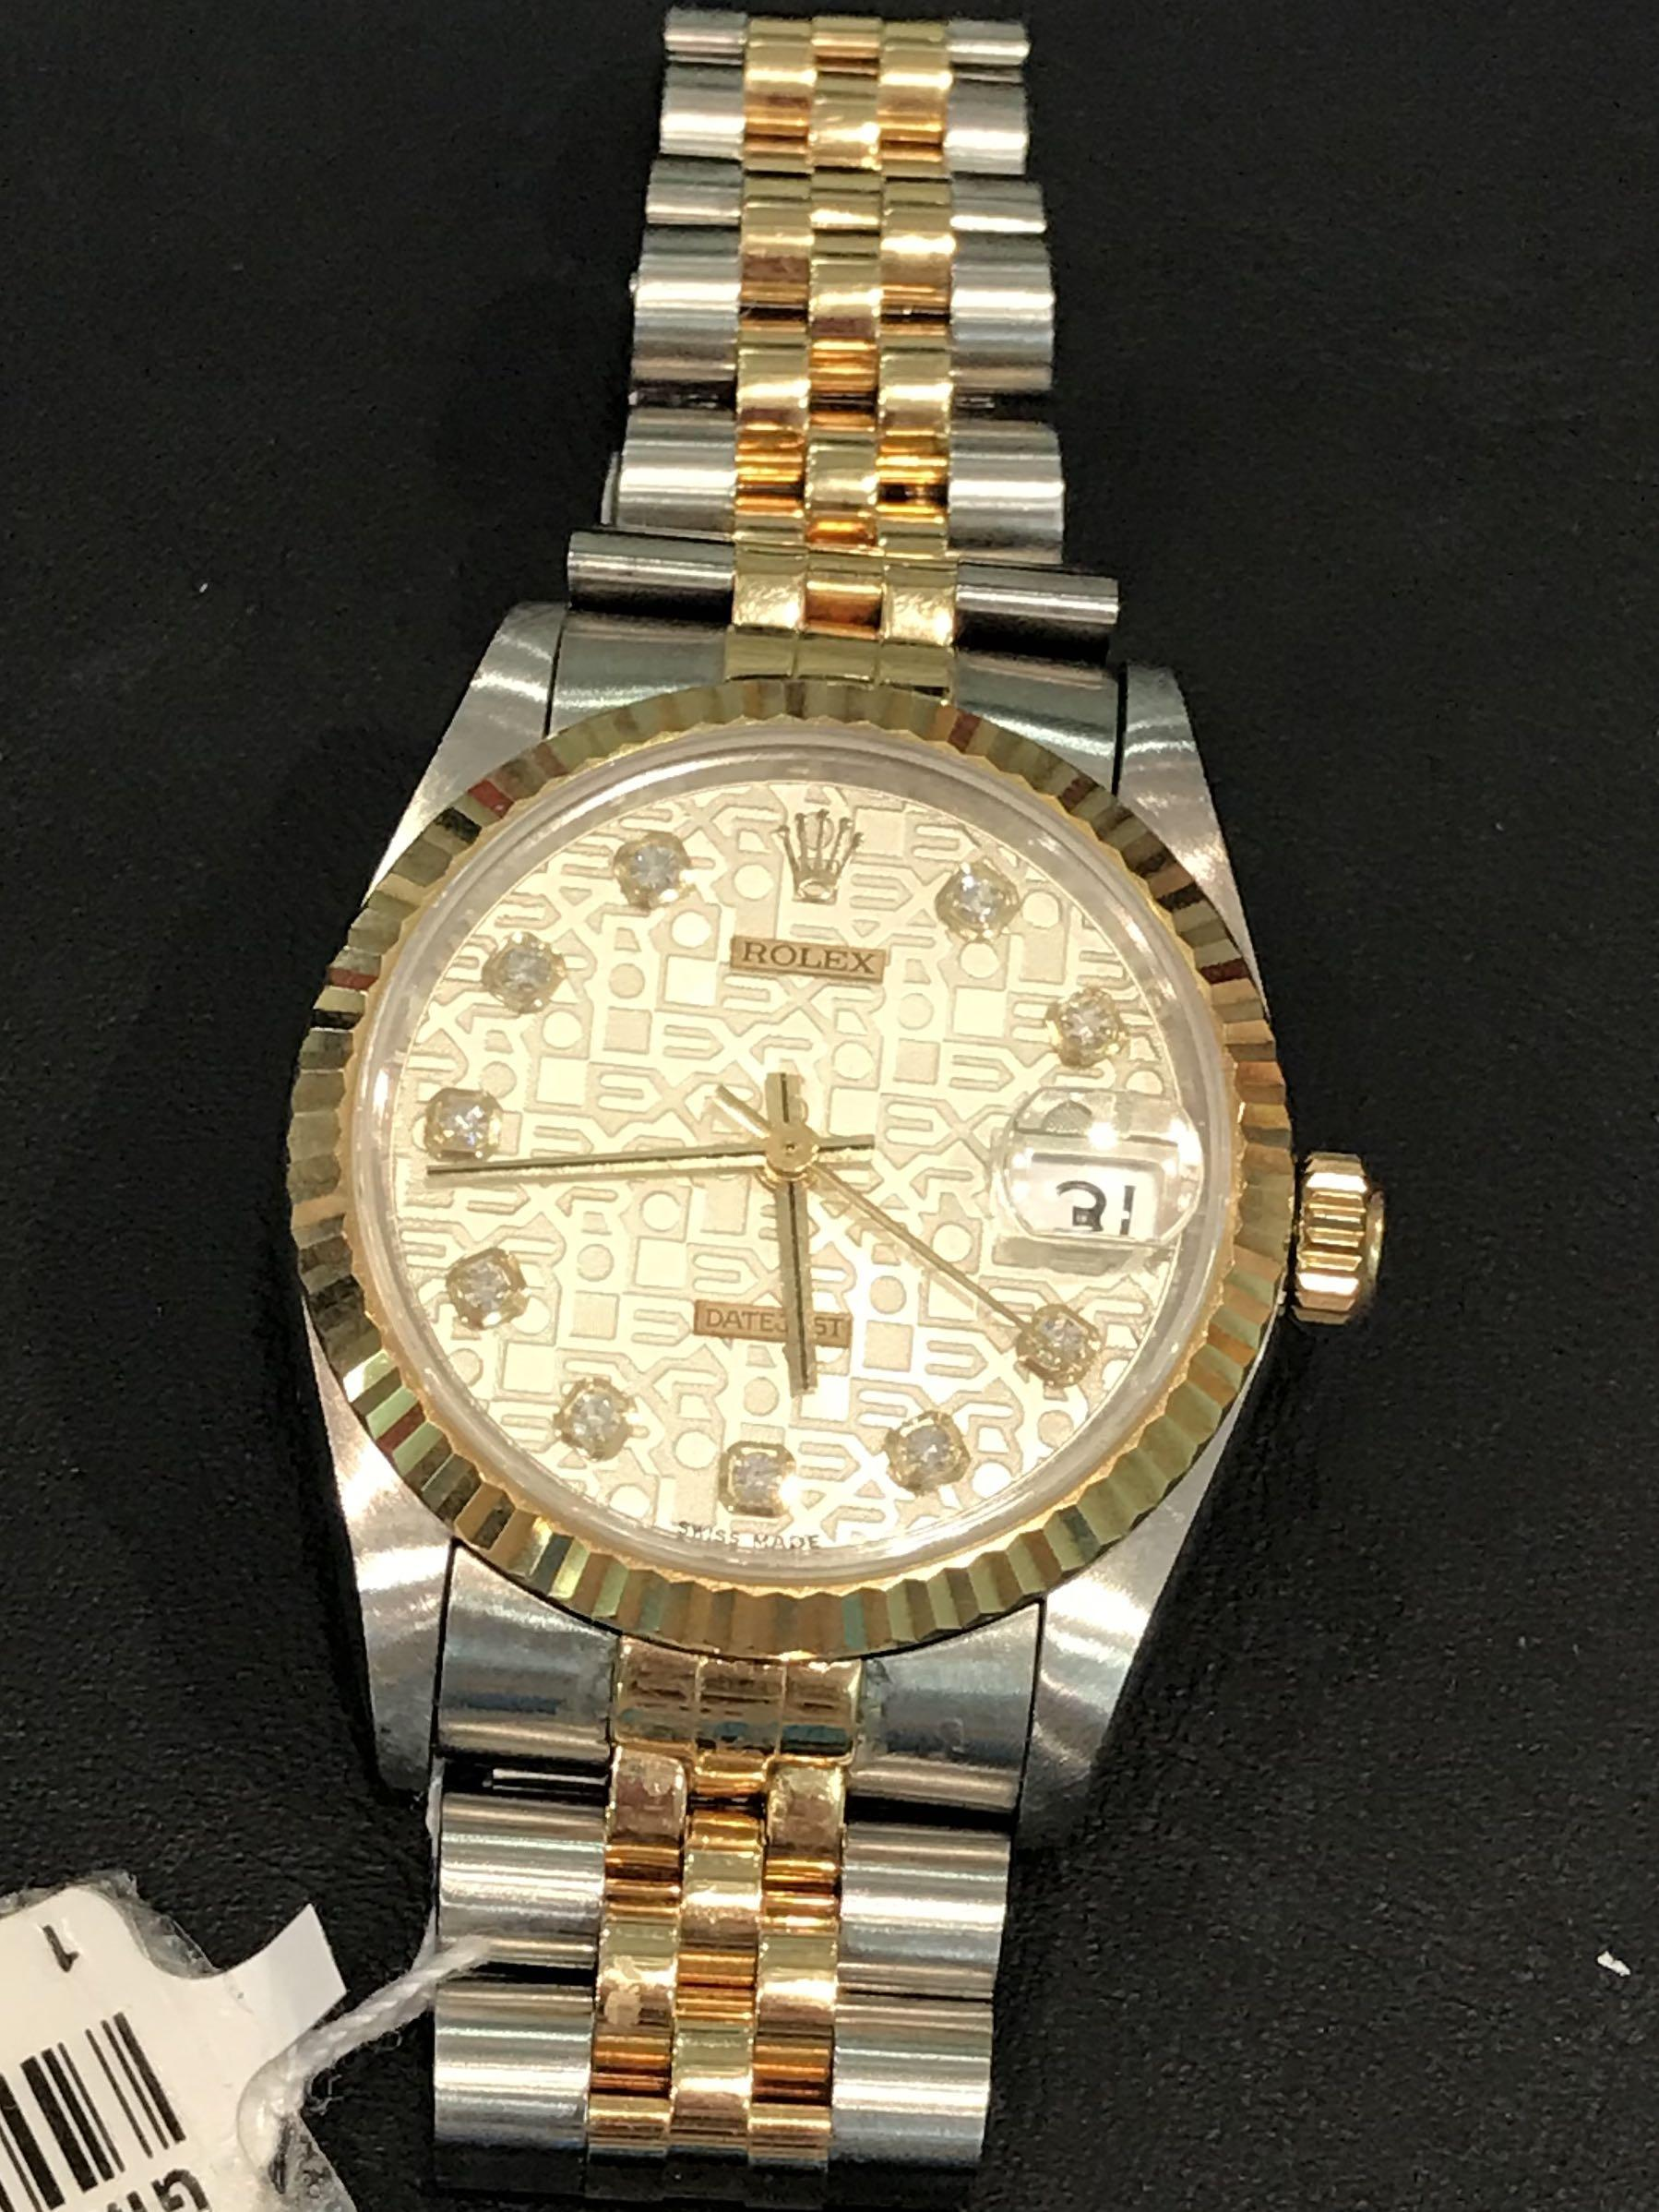 CLEARANCE SALES {Luxury Dress Watch - ROLEX} Authentic Half Gold ROLEX Boy OYSTER  DateJust 31mm Computer Dial With Diamonds Model 68273 Come With Original 18K Solid Gold Bezel & Half Gold Bracelet